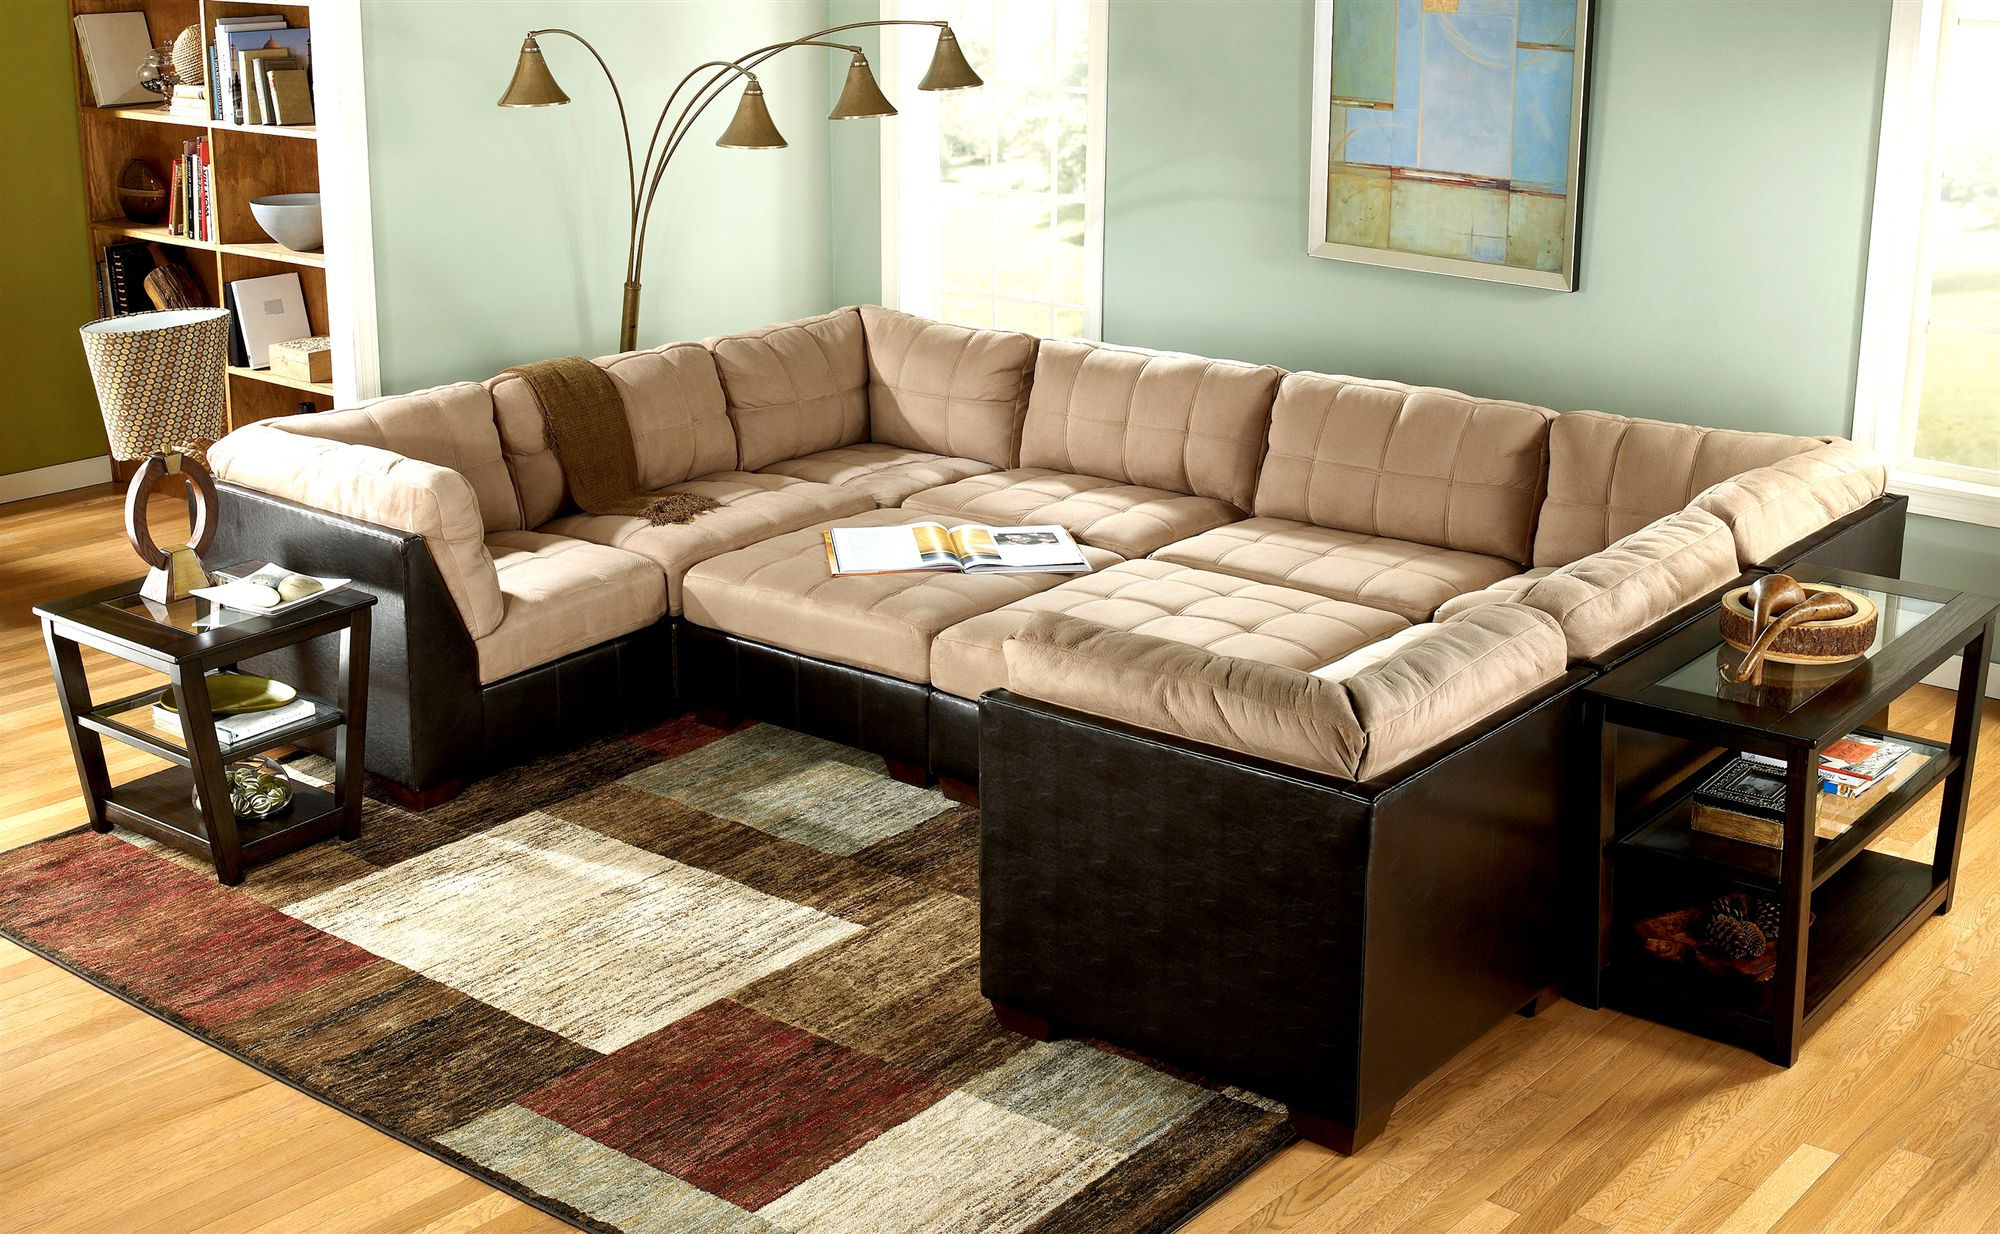 Living room ideas with sectionals sofa for small living Sofas for small living rooms